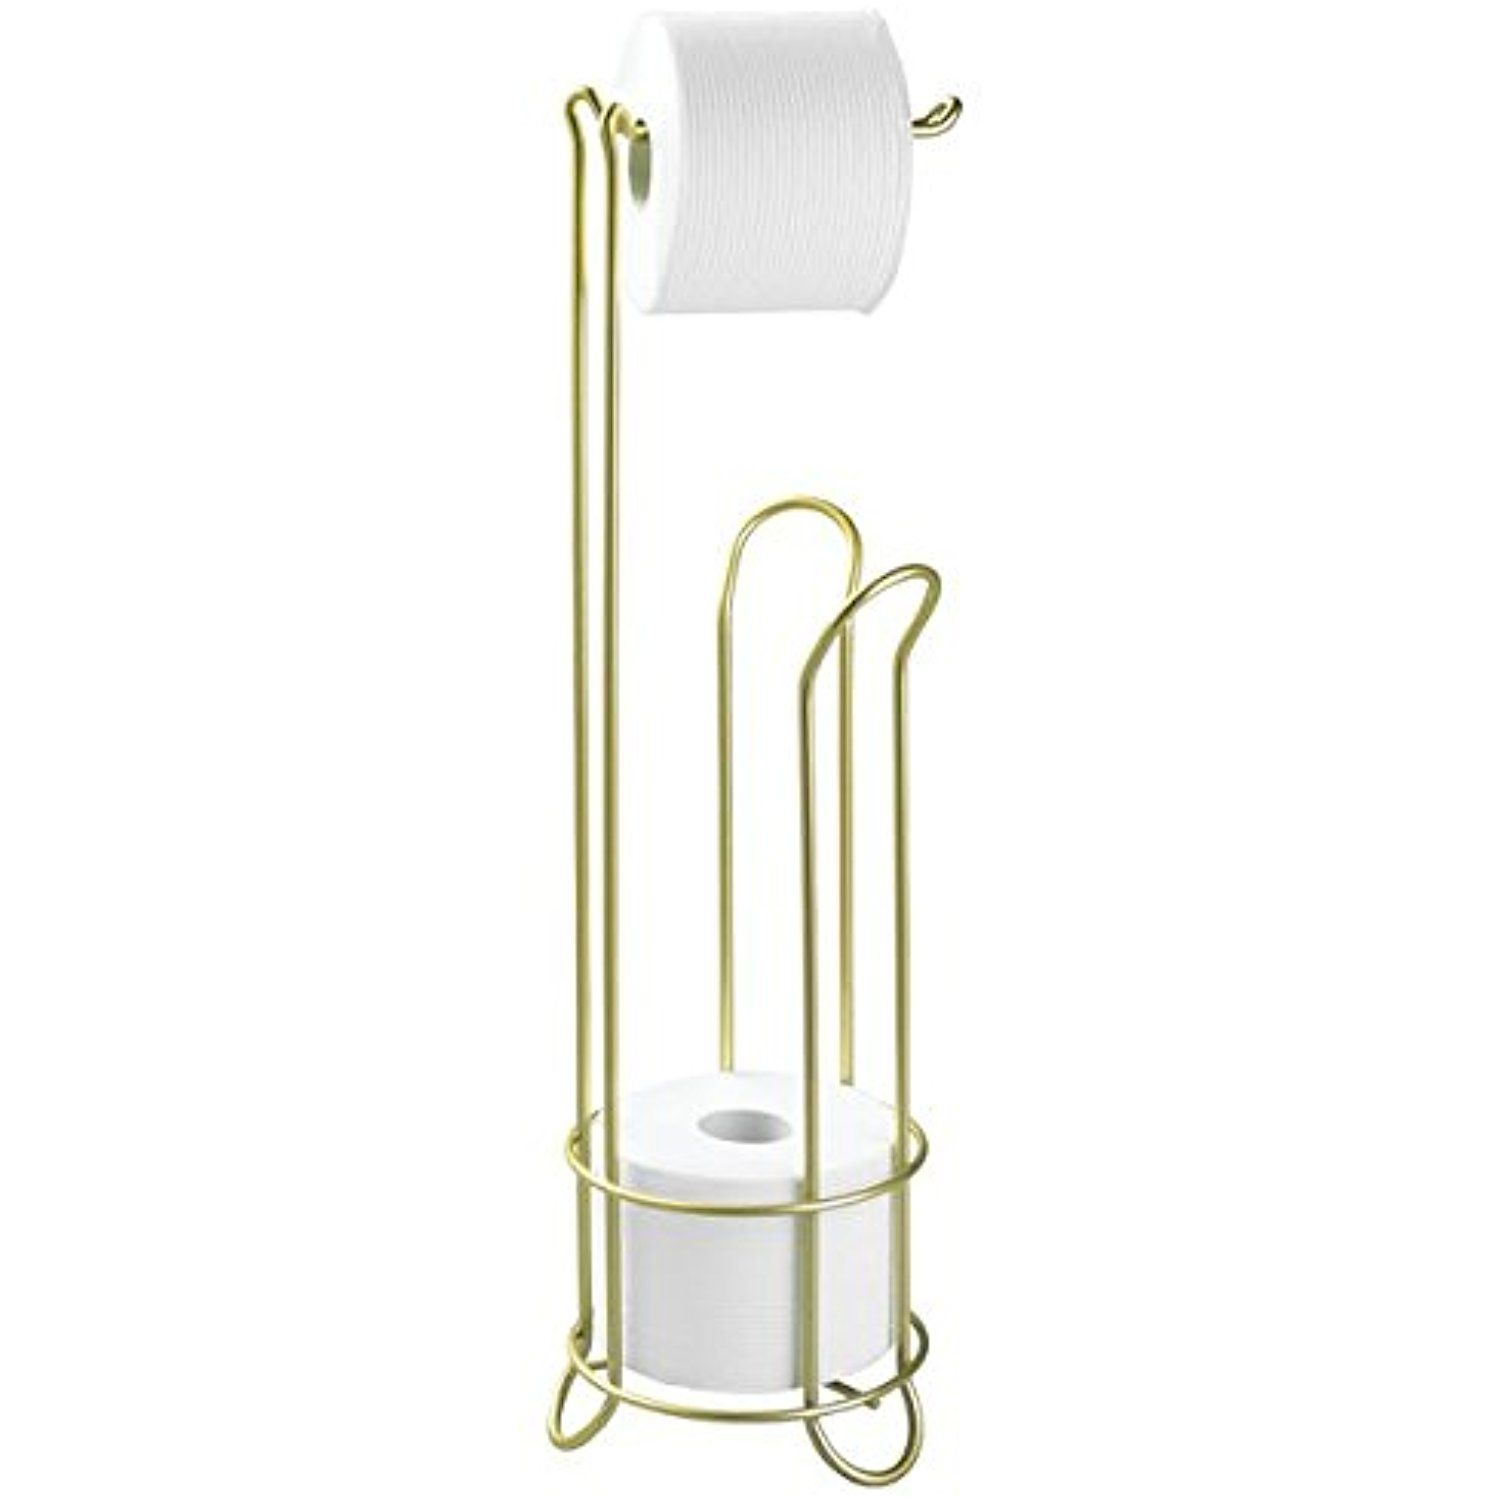 Mdesign Free Standing Toilet Paper Holder For Bathroom Storage Gold Brass Click Image Toilet Paper Holder Pedestal Toilet Paper Holder Toilet Paper Stand